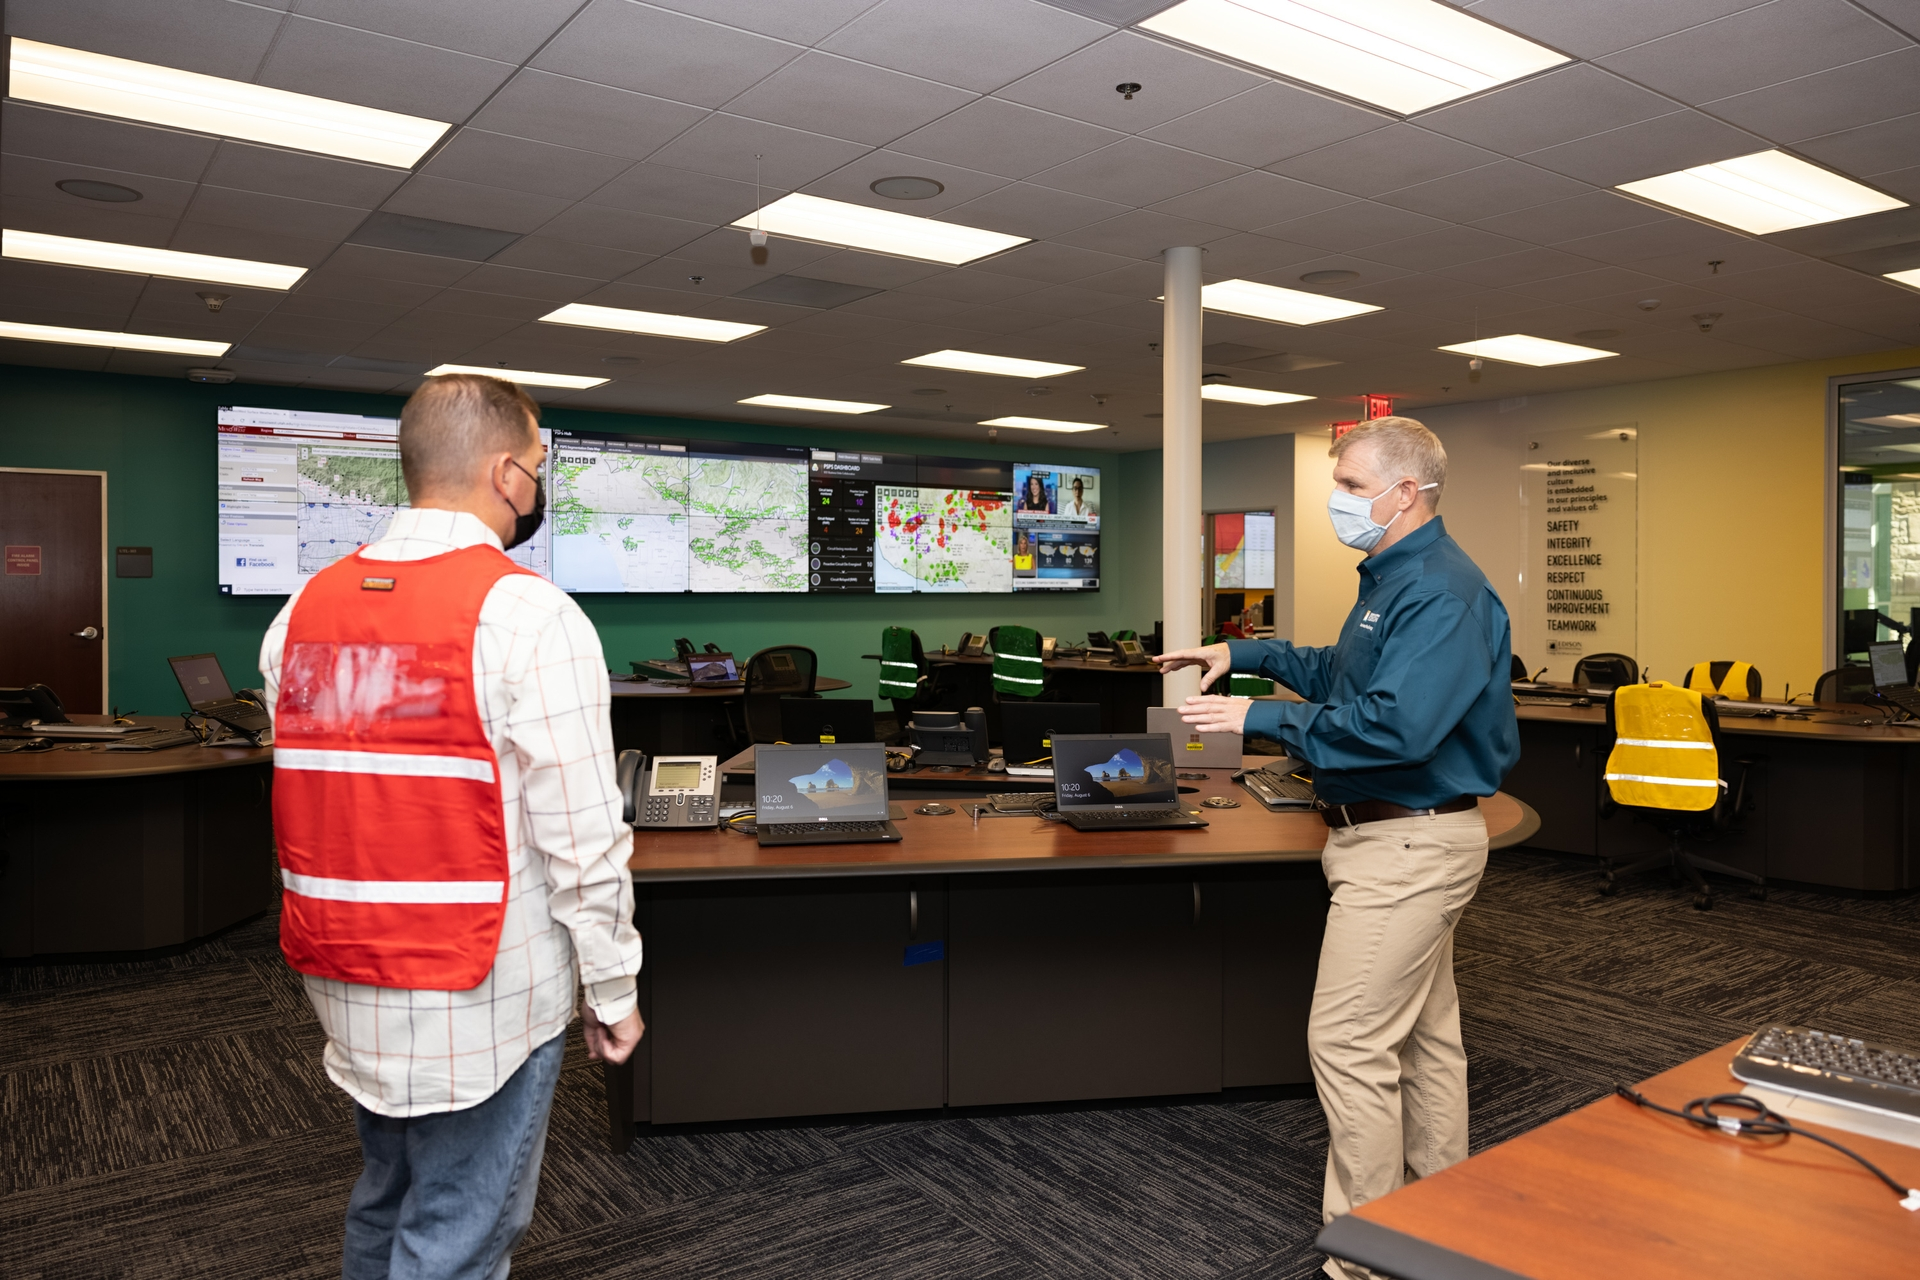 Don Daigler (right), SCE managing director of Business Resiliency, and Thomas Jacobus, SCE Business Resiliency principal manager, are monitoring SCE's Alert Wildfire Camera System.